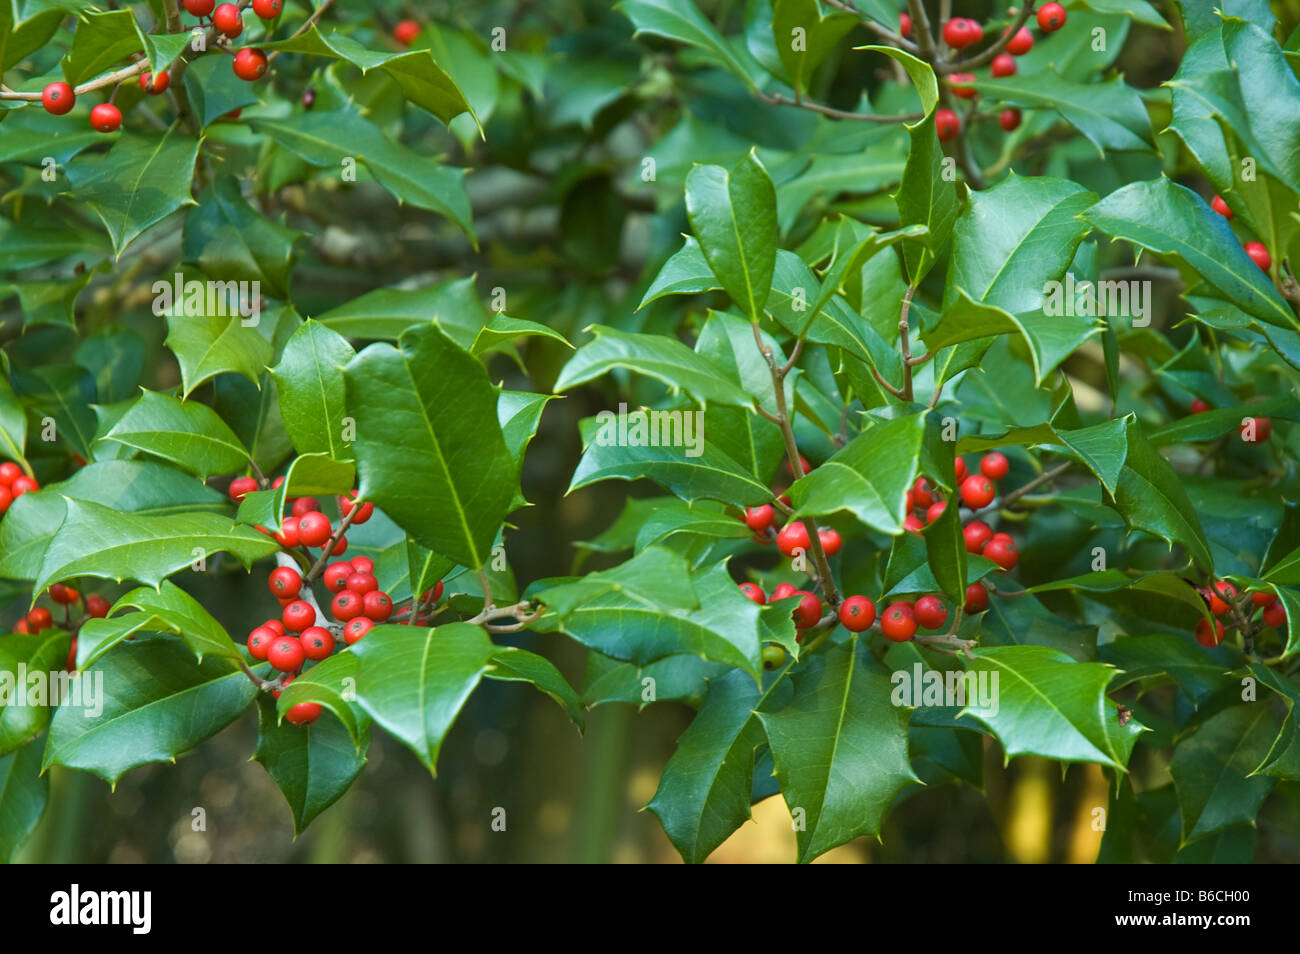 Christmas green holly leaves and red berries on holly tree (ilex ) all over pattern wallpaper winter outdoor background - Stock Image